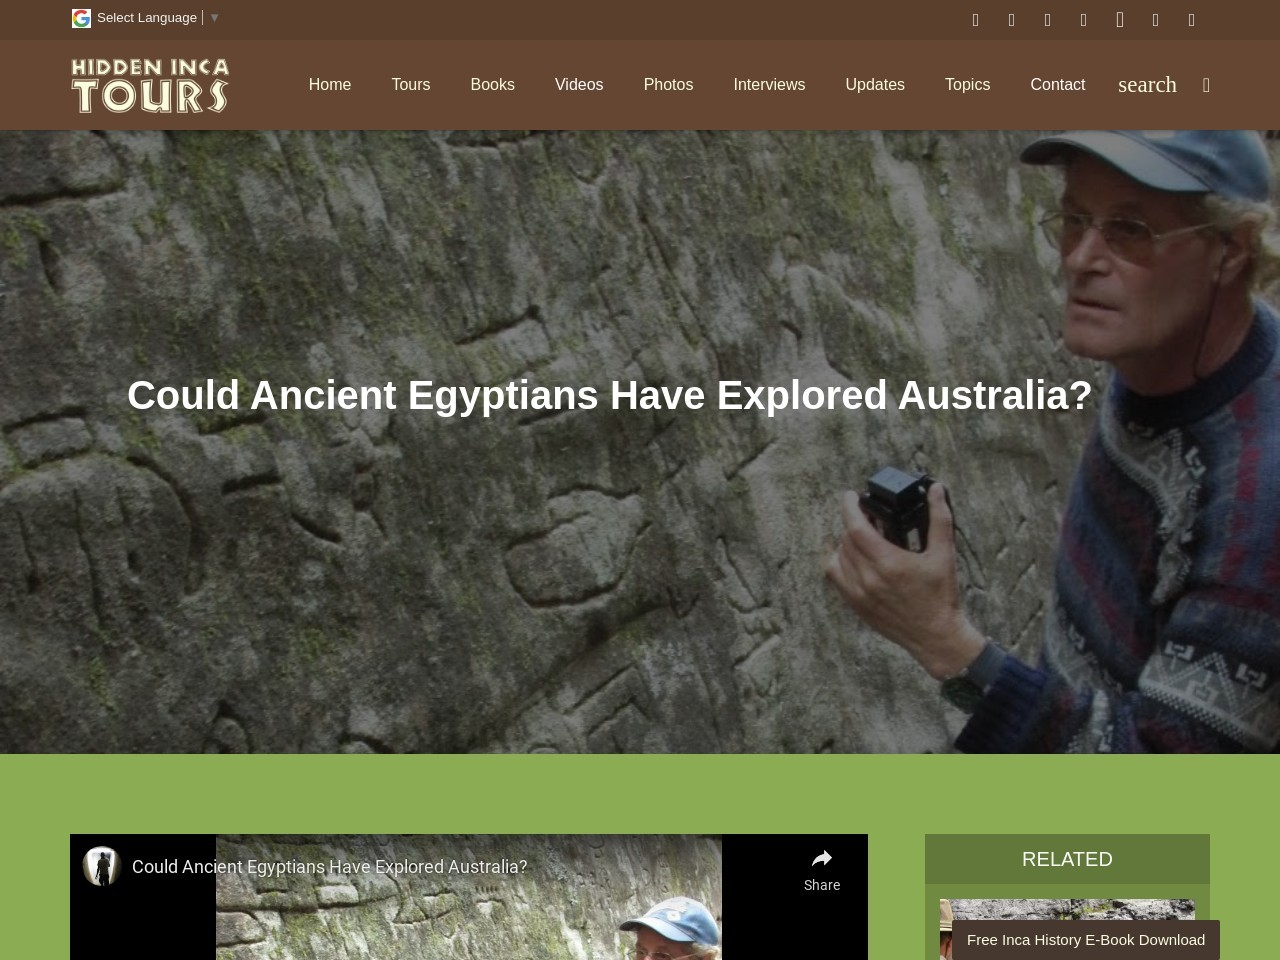 Could Ancient Egyptians Have Explored Australia?